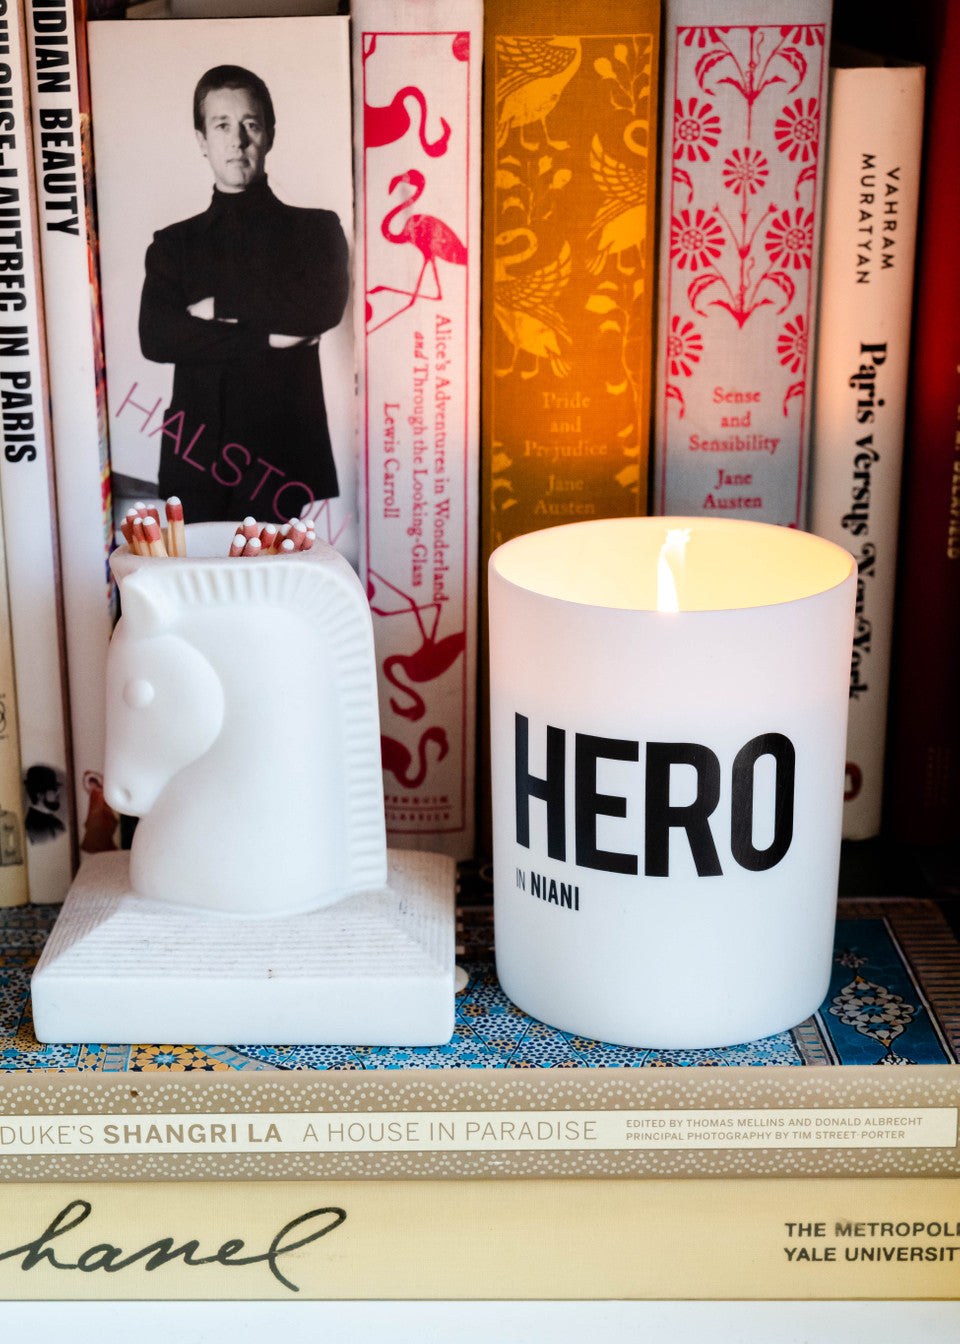 HERO Scented Candle burning